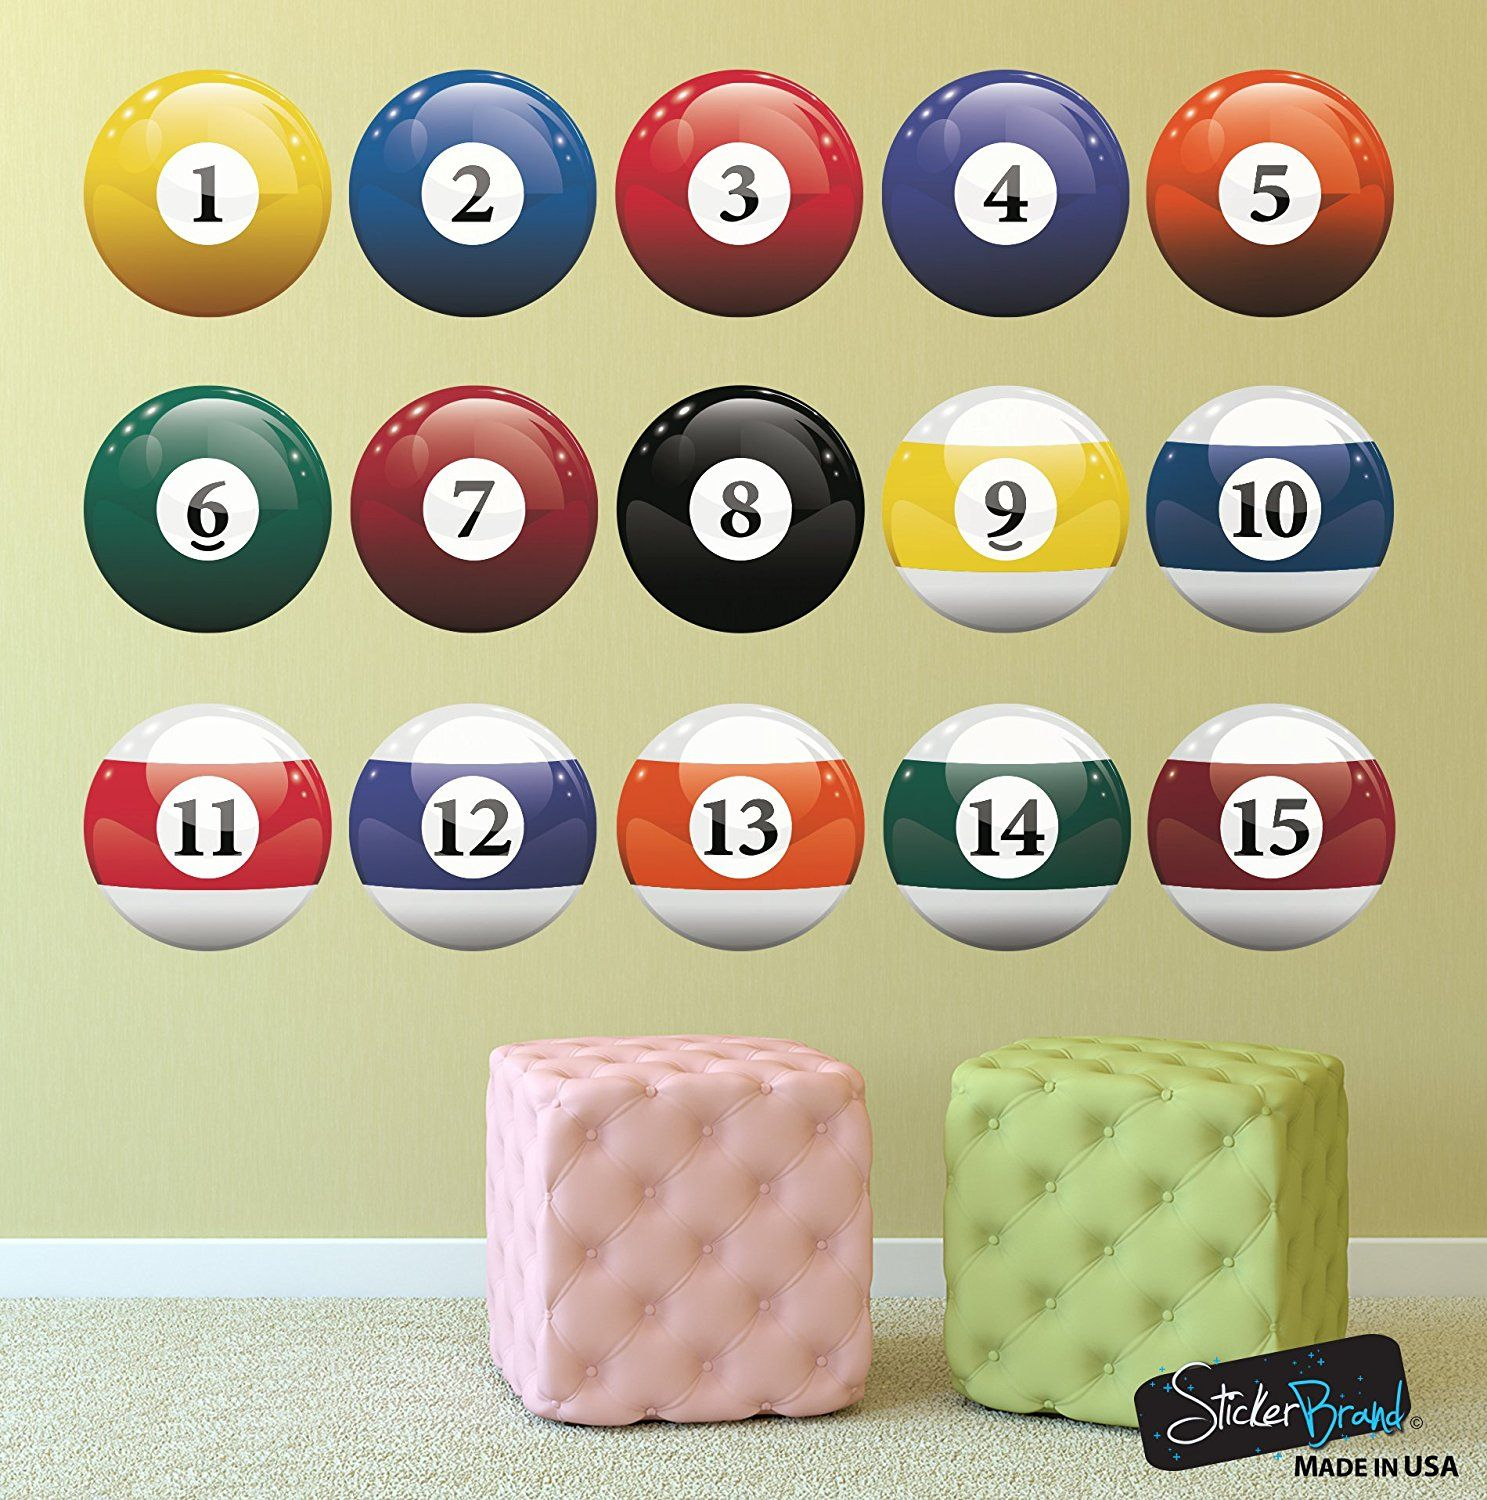 16 Realistic Color Billiard Balls Wall Decal Sticker Game Room Sign ...